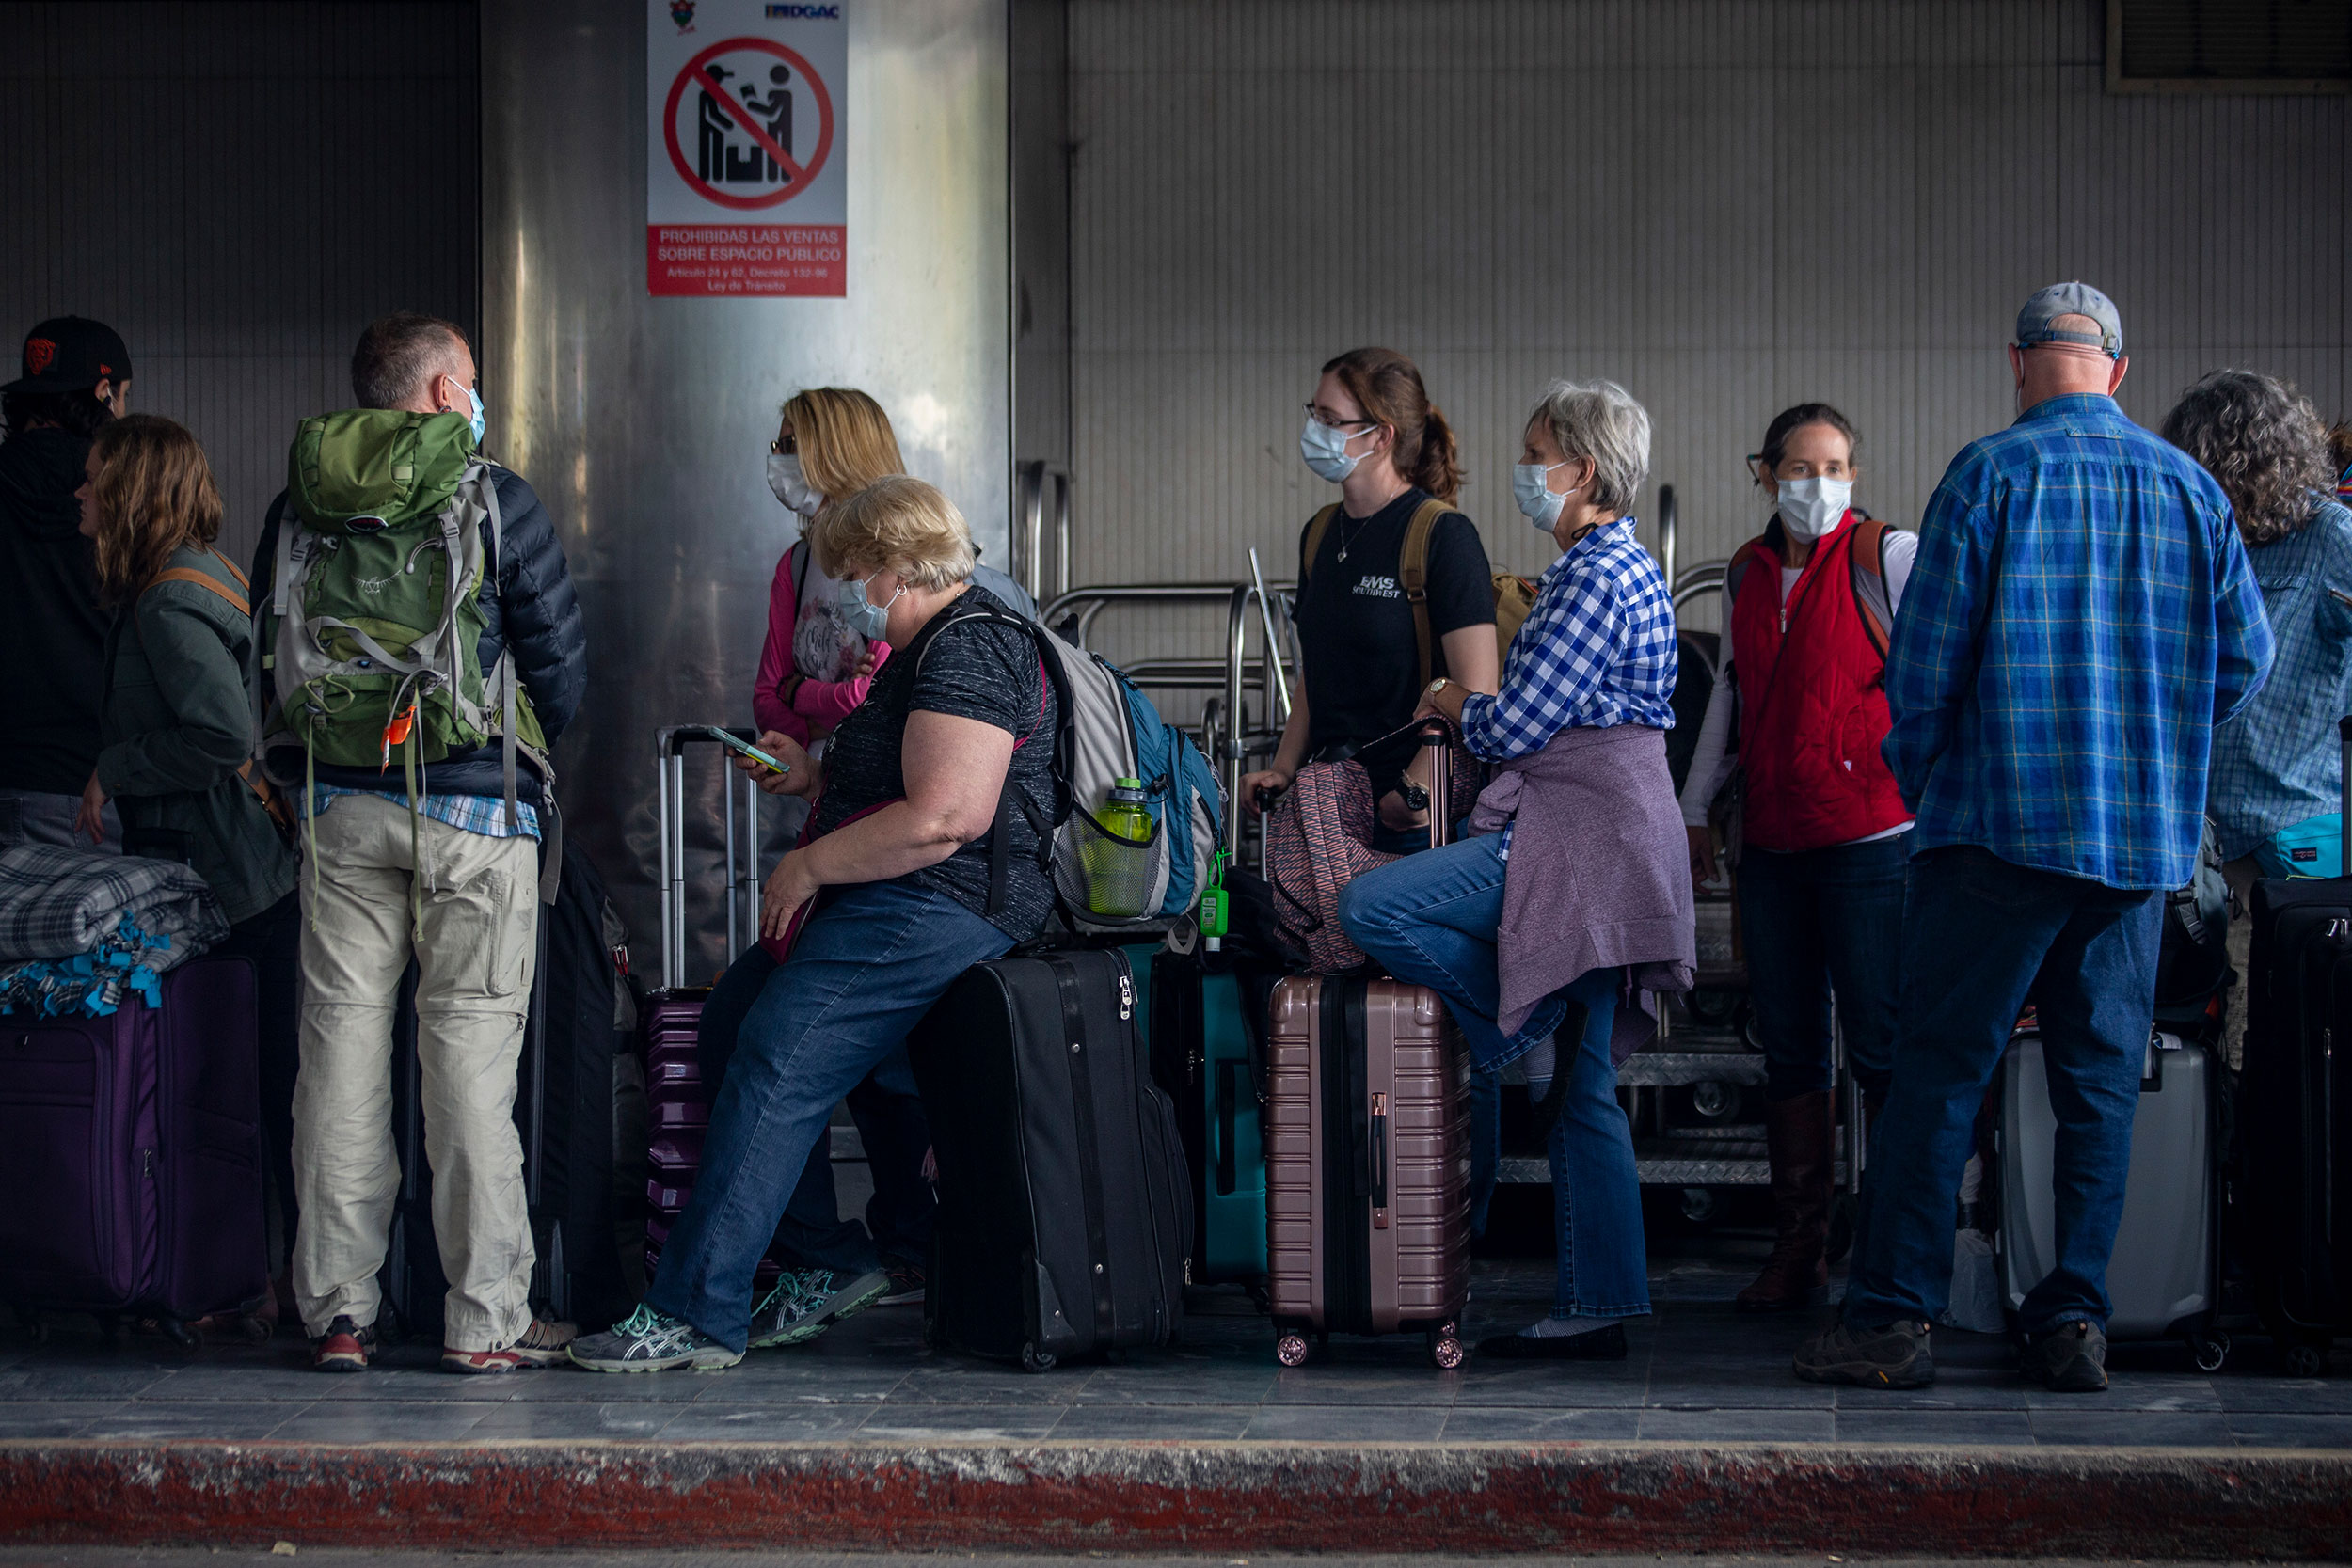 State Department says it's retrieved over 18,000 US citizens stranded abroad amid coronavirus pandemic